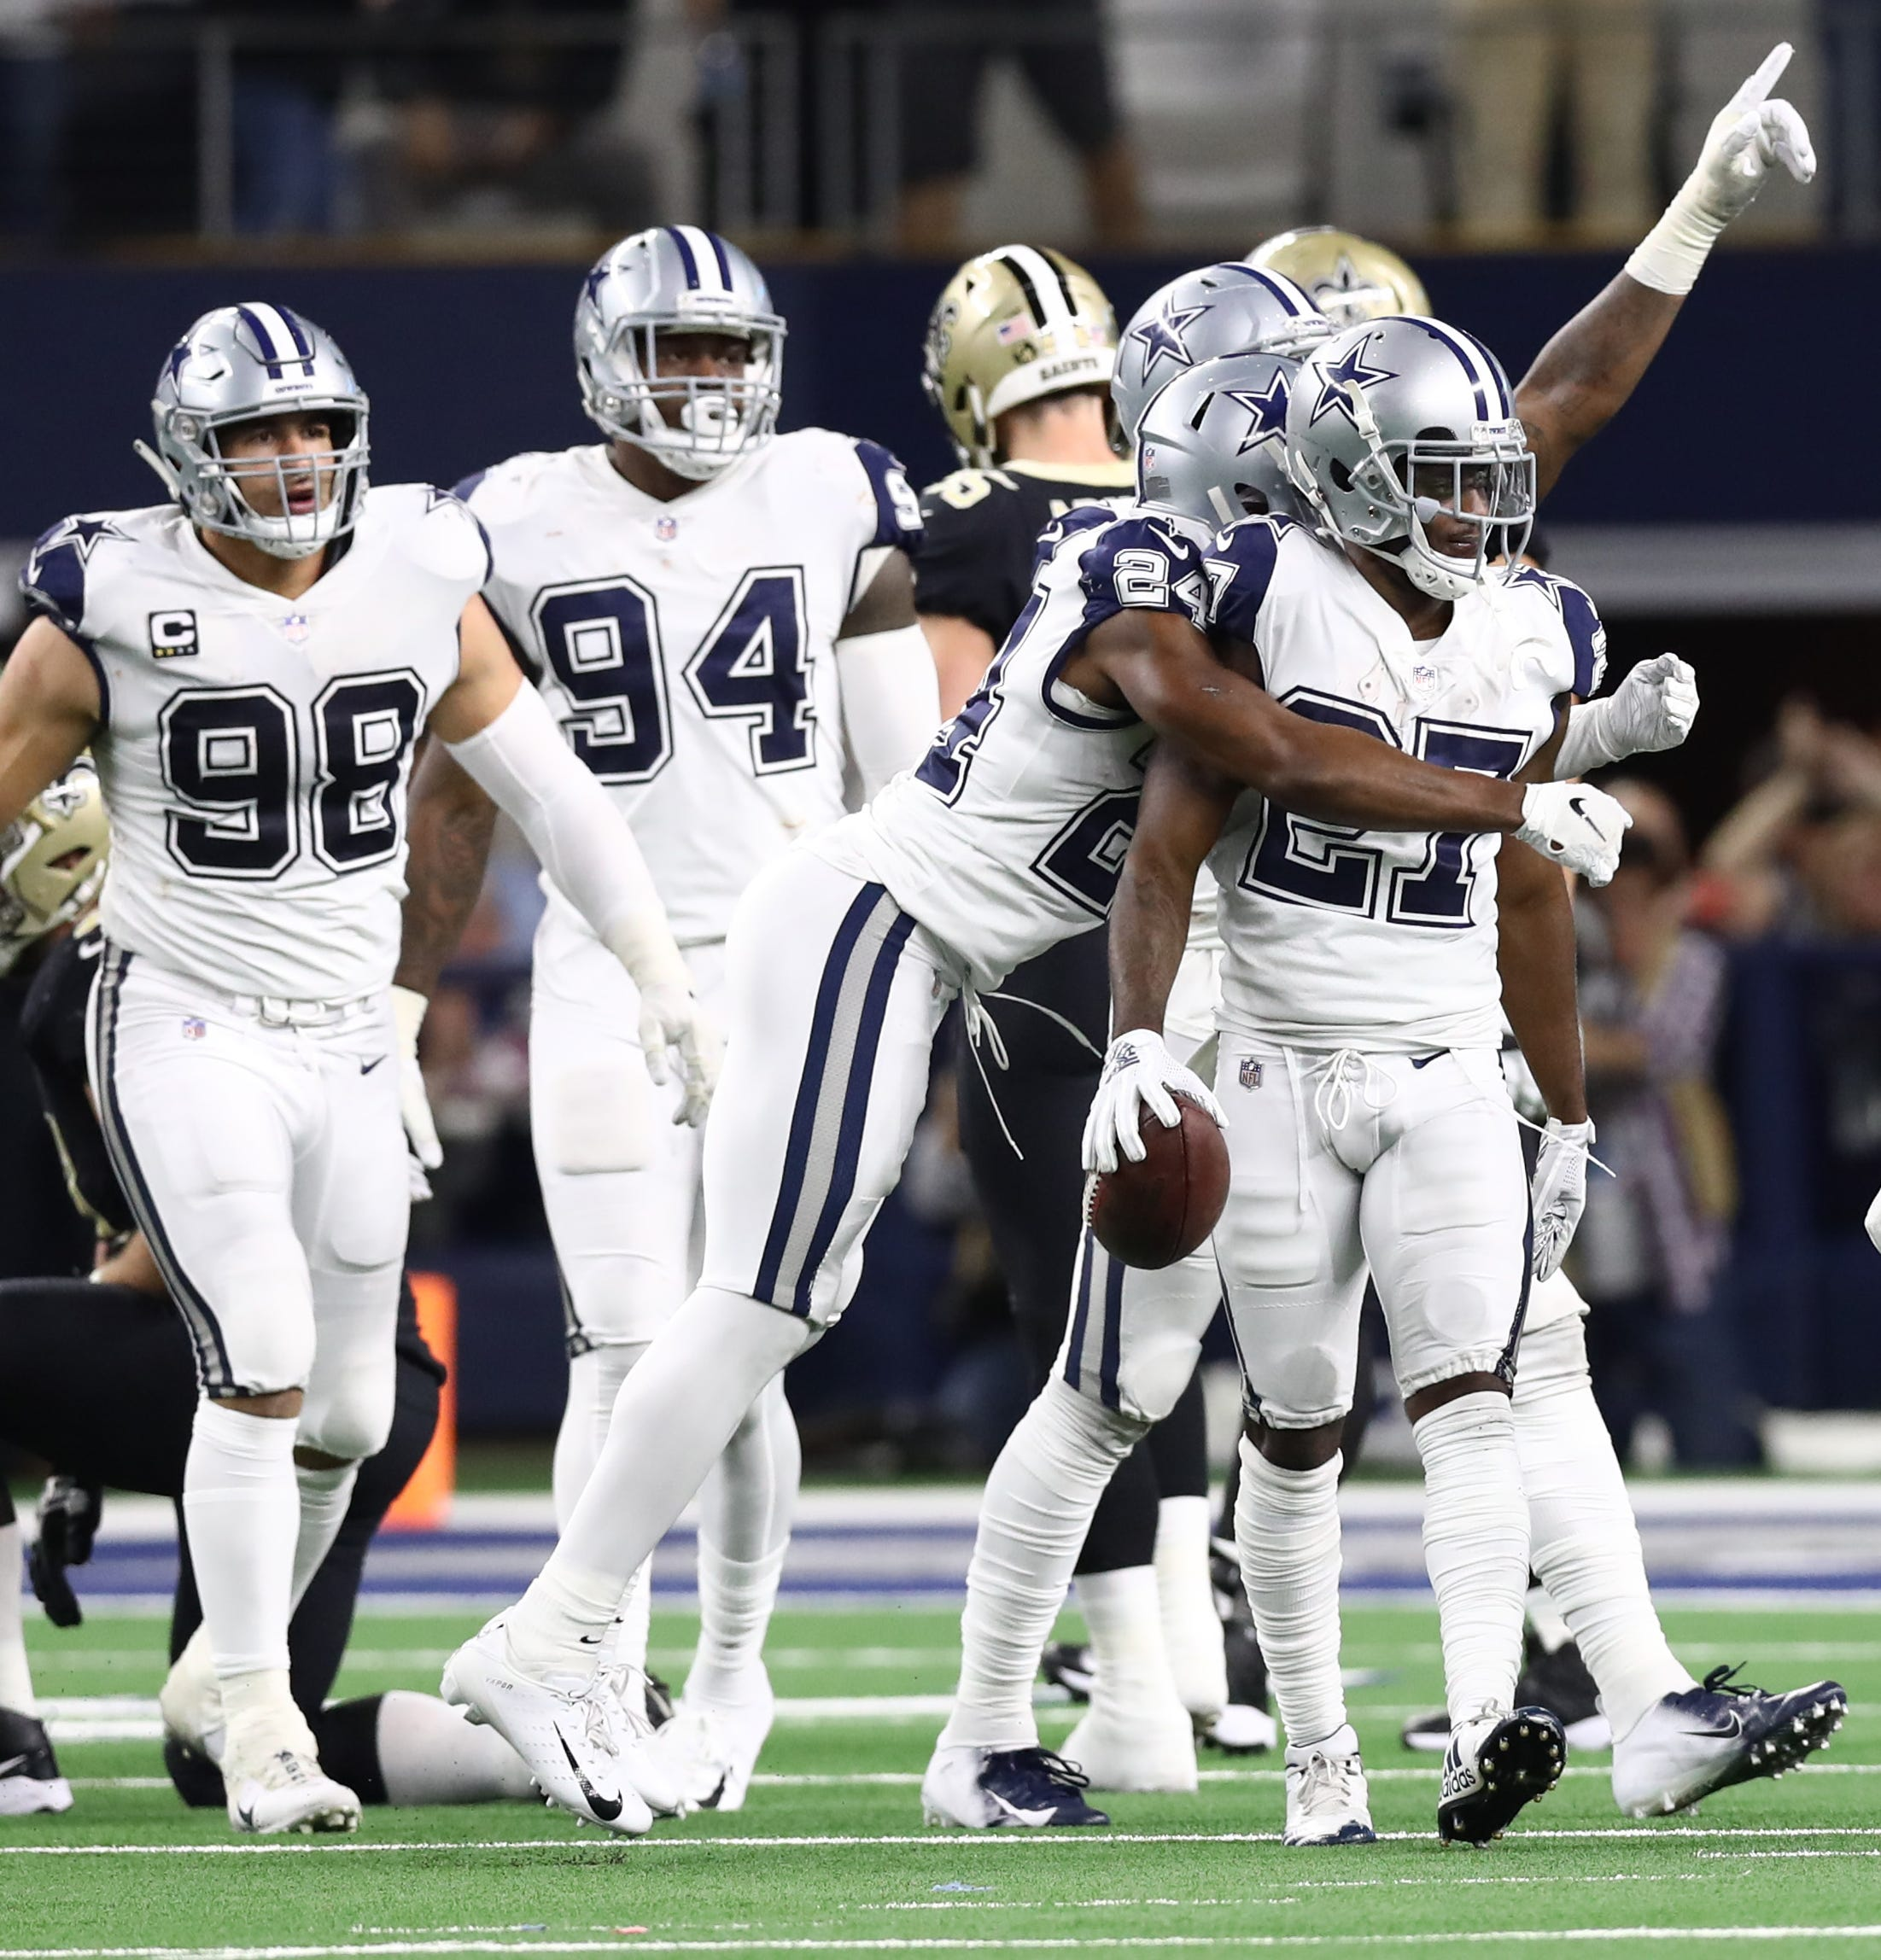 Nfl New Orleans Saints At Dallas Cowboys